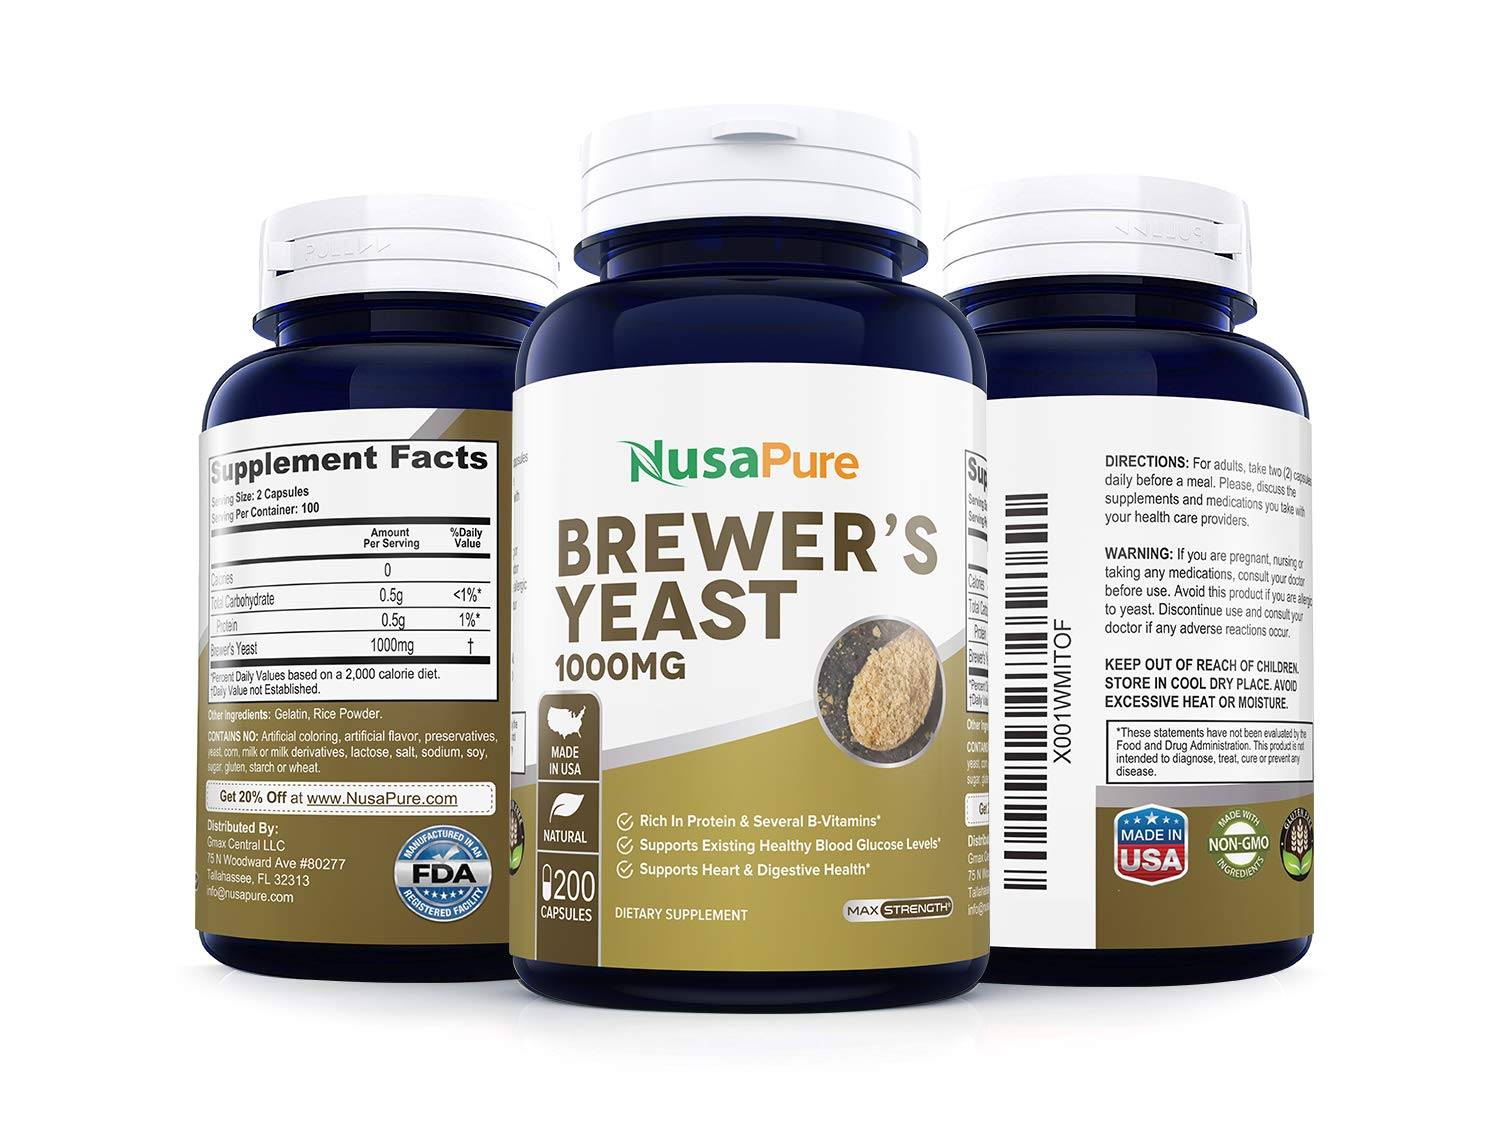 Brewers Yeast 1000mg 200caps (Non-GMO & Gluten Free) Supports Heart Health and Digestion